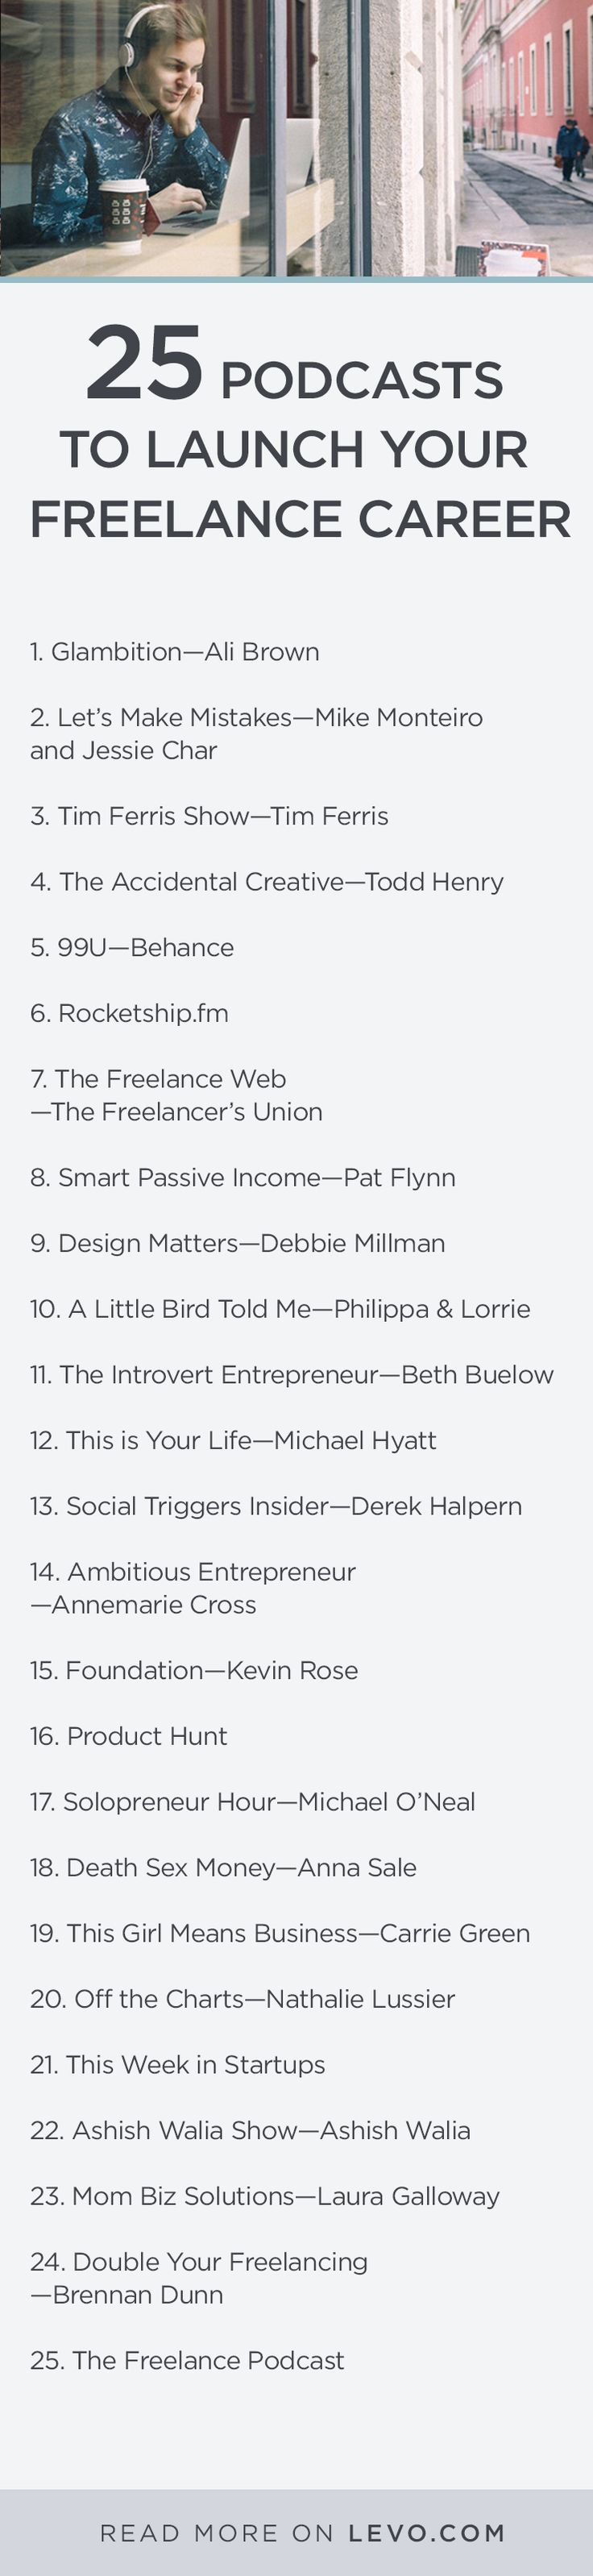 Tim Ferris, Carrie Green, and more will help you make bank.// Here are 25 podcasts to get your freelance career started. @levoleague www.levo.com